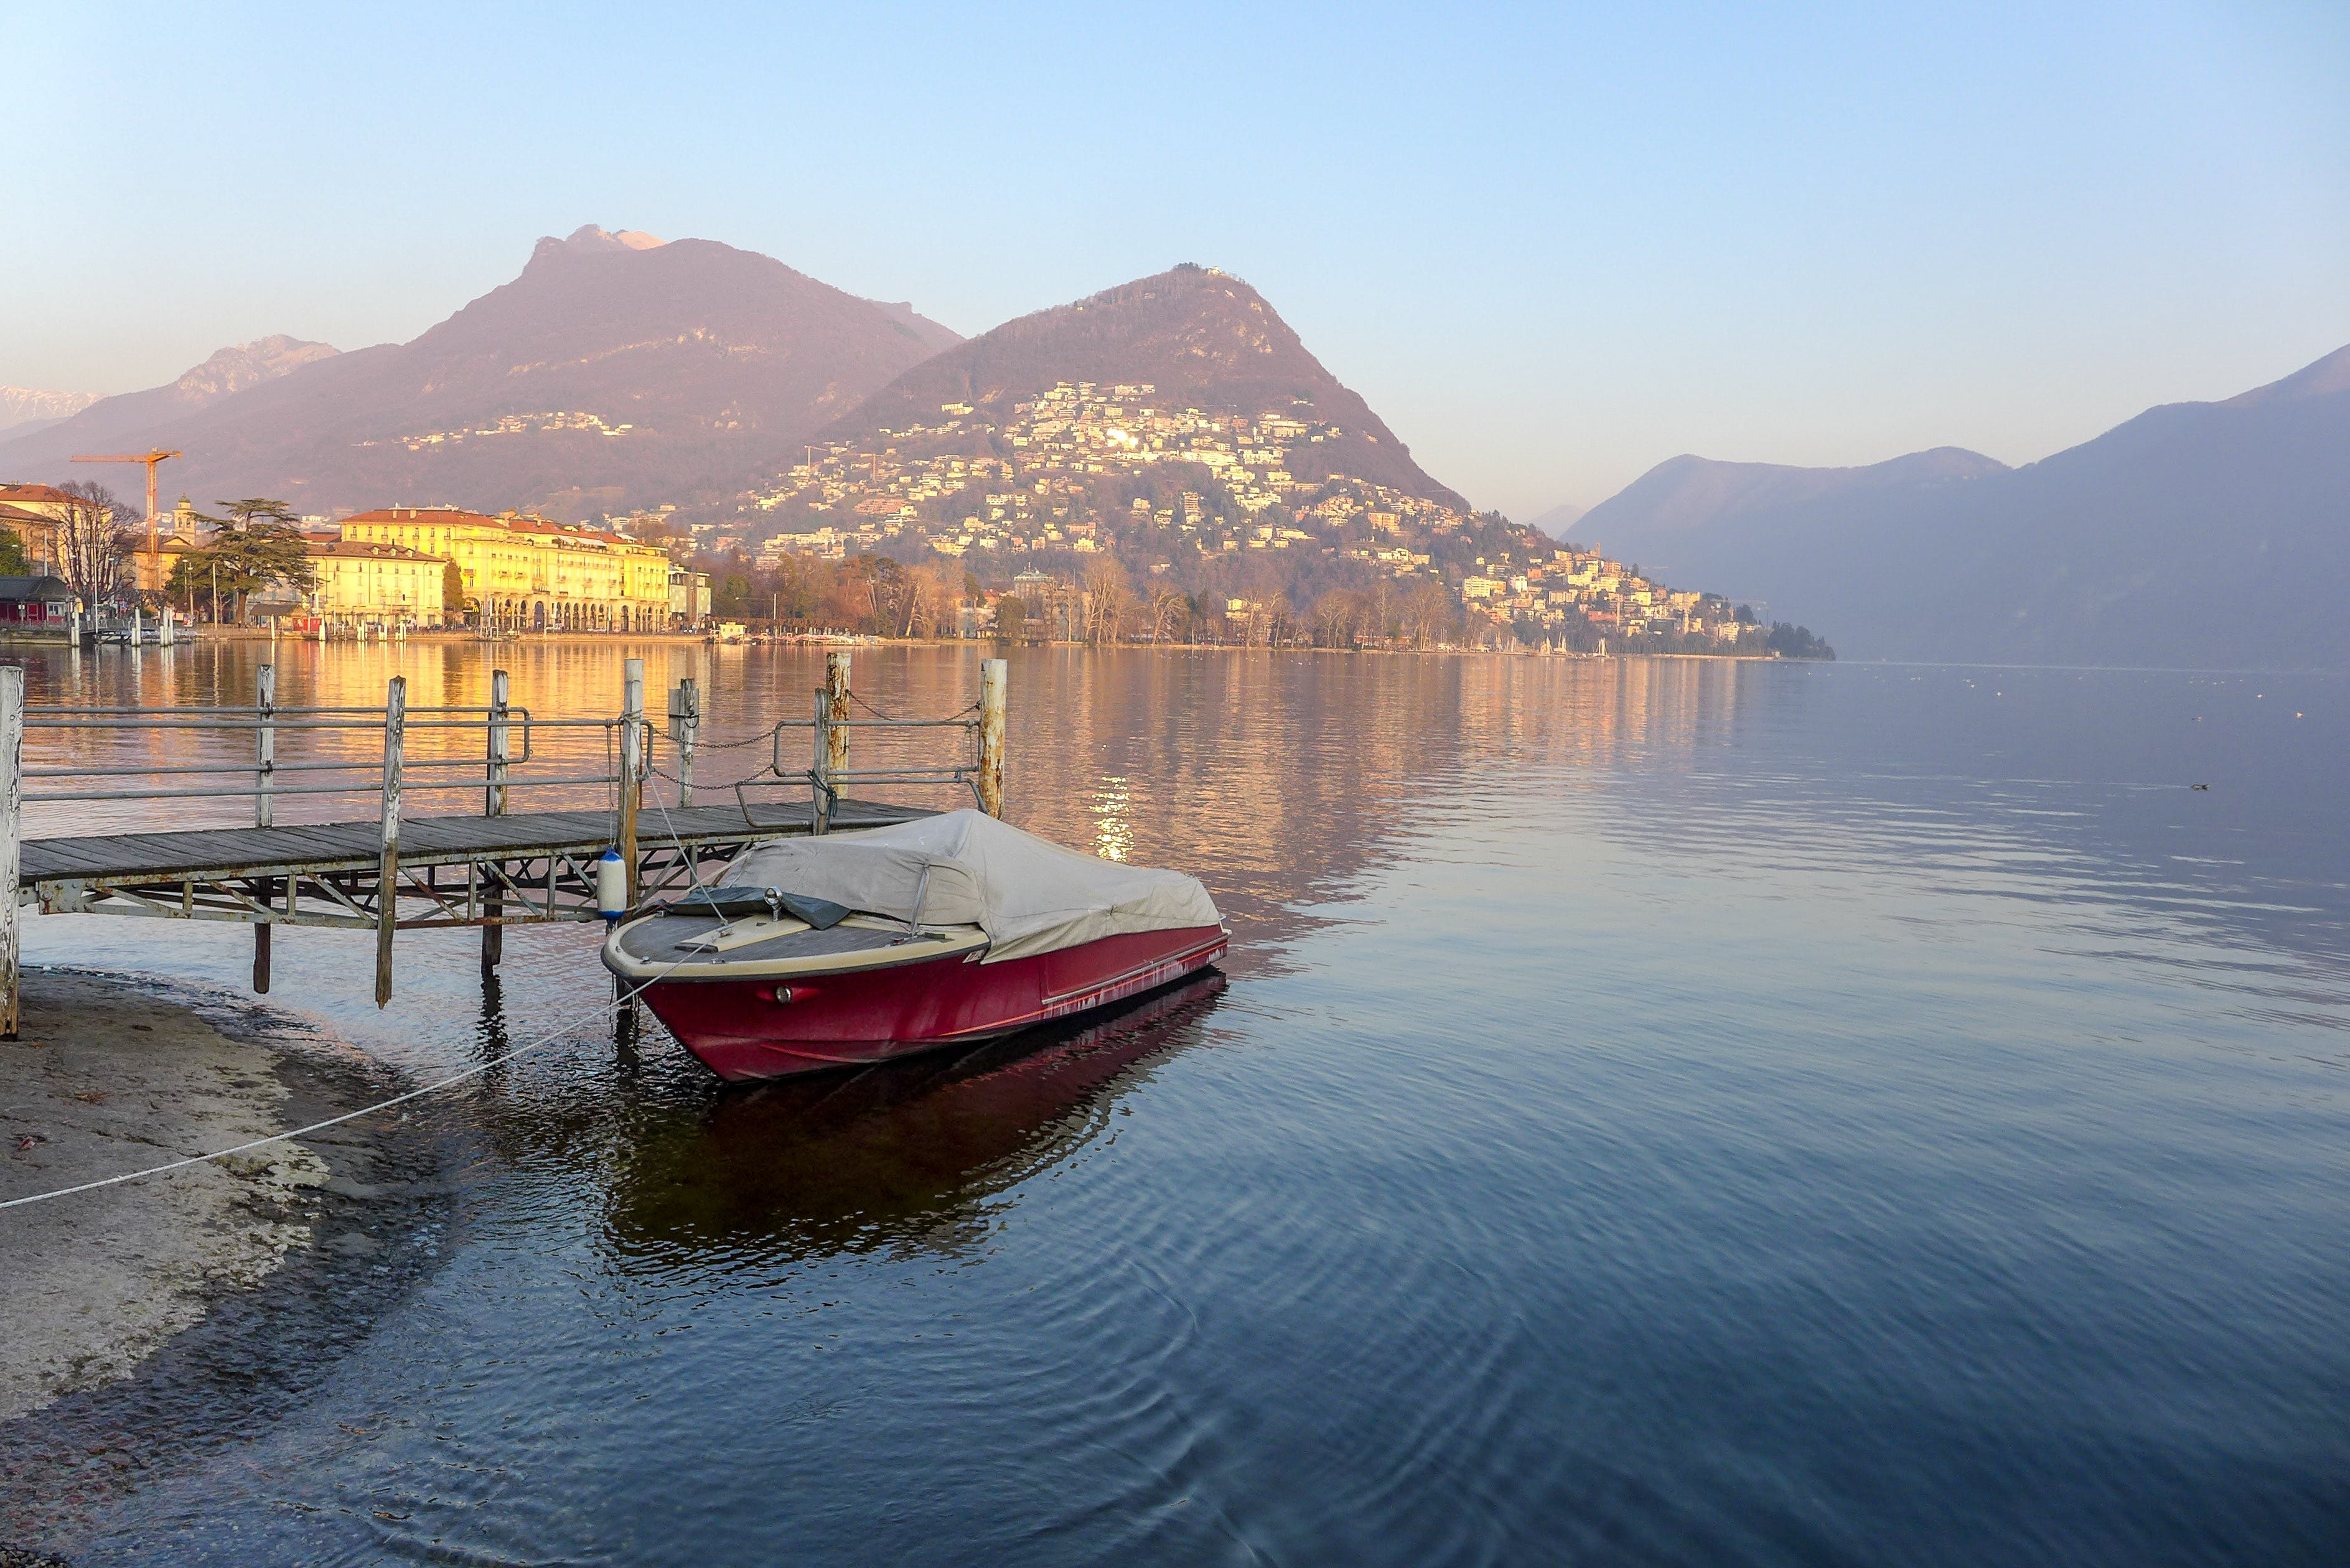 Free stock photo of boat, city, lake como, mountains